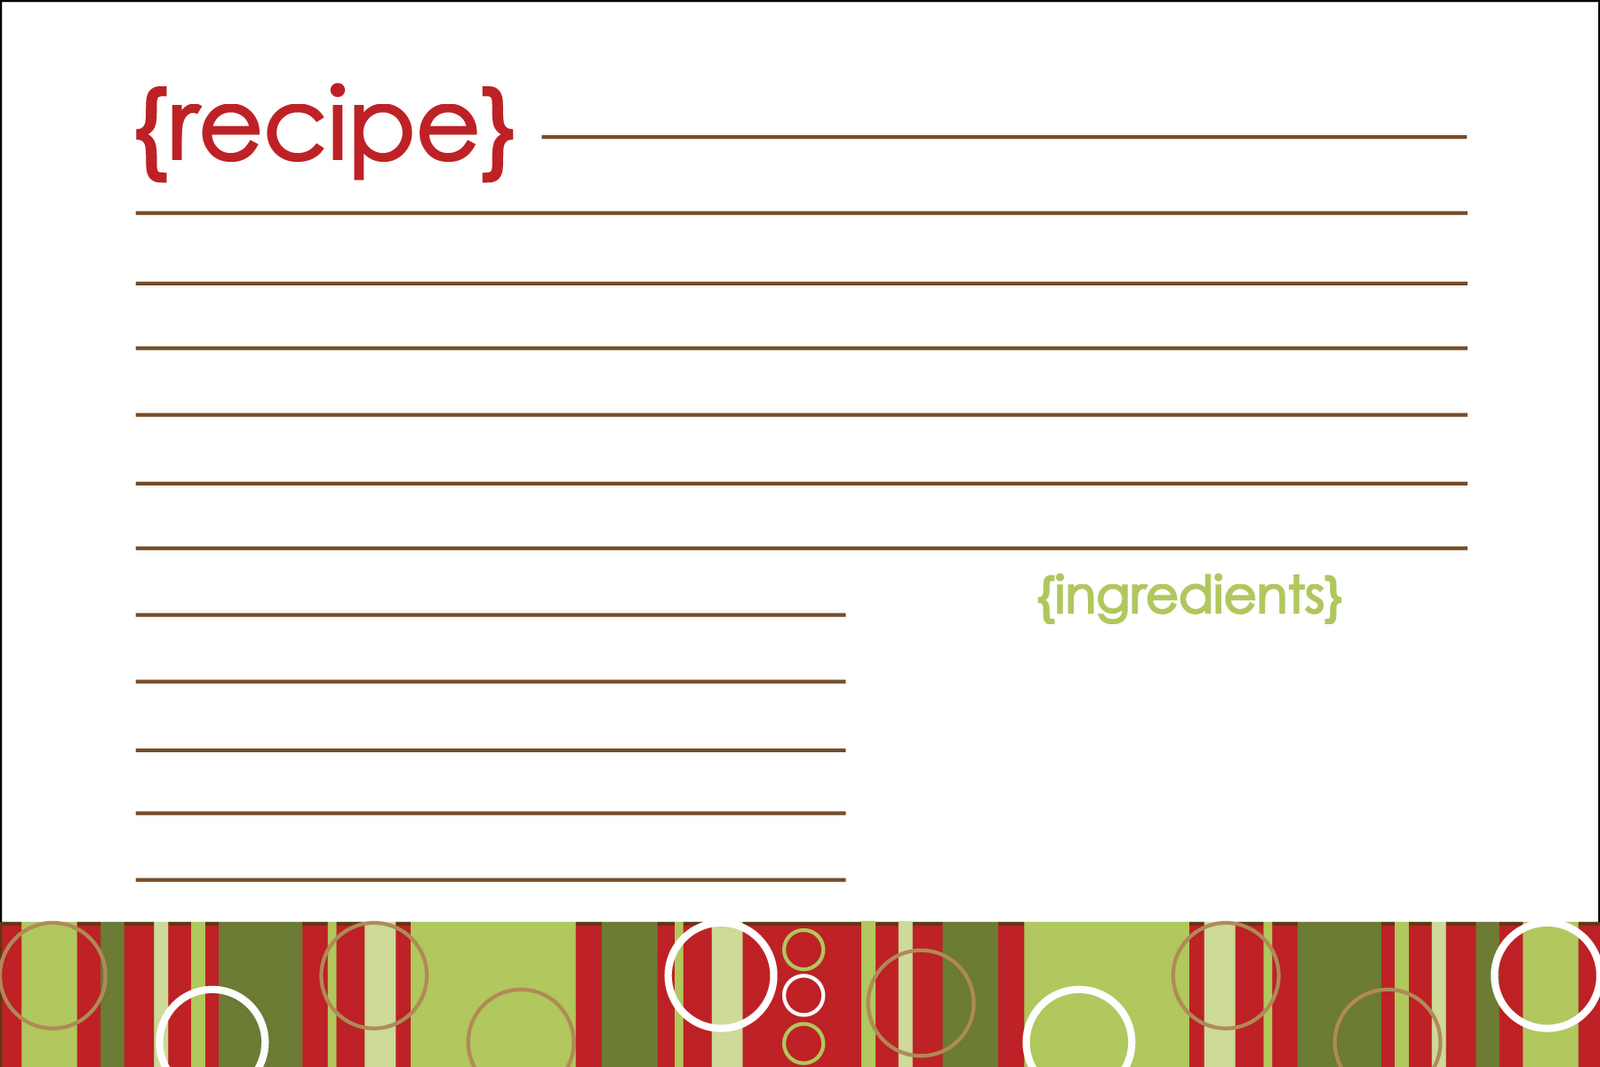 photograph relating to Printable Christmas Recipe Cards identified as significantly reported: totally free printable: xmas recipe card.